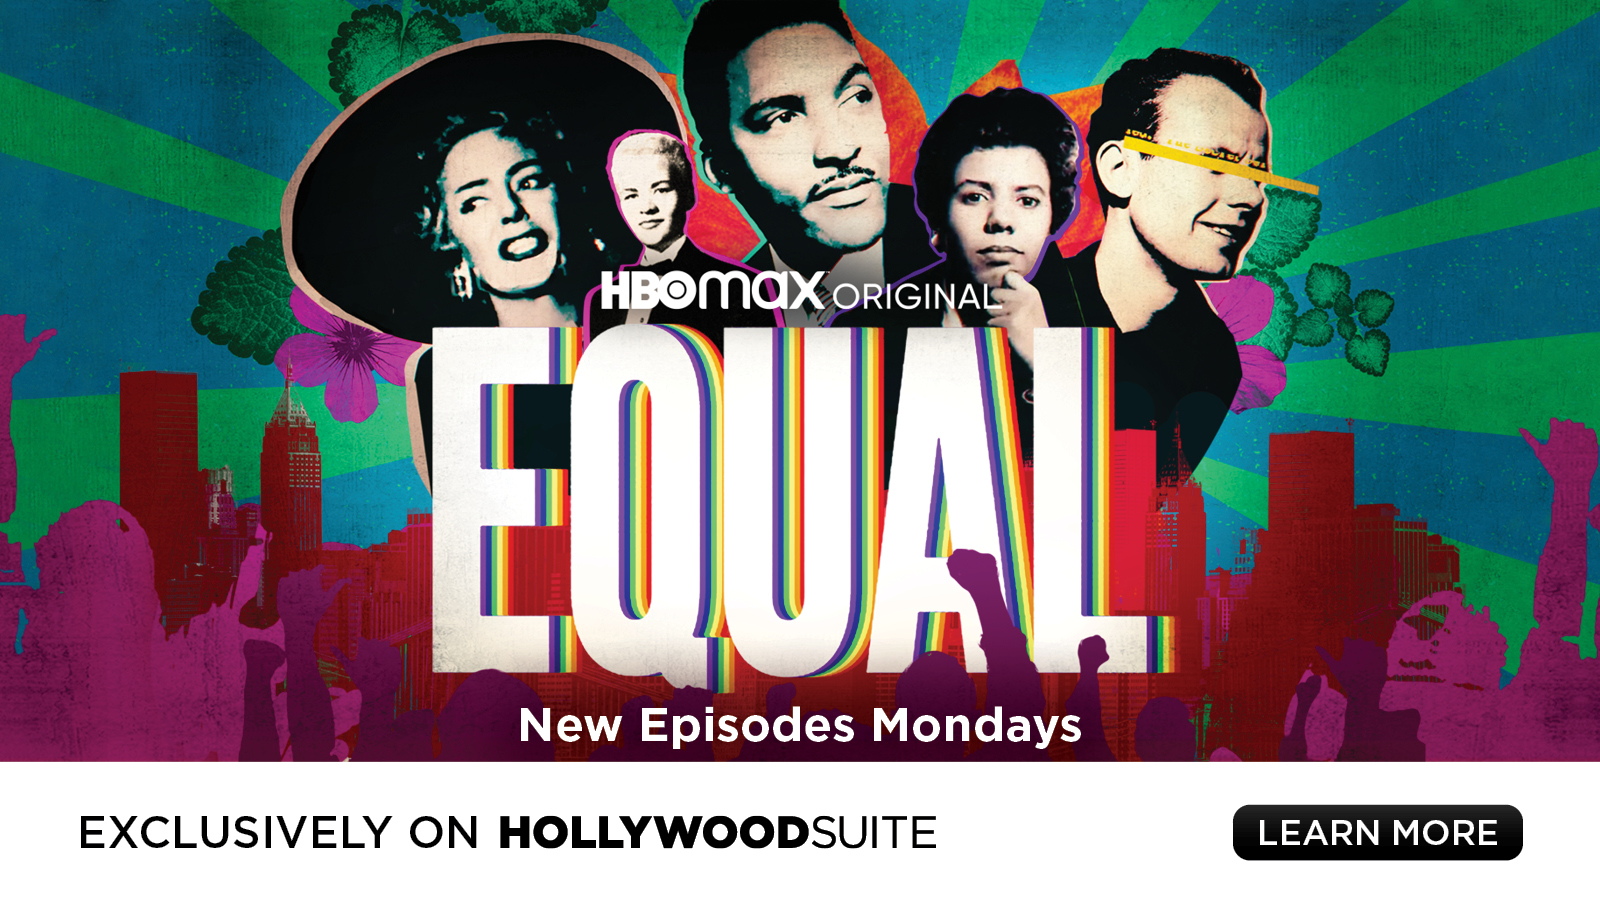 HBOmax Original – EQUAL – New episodes Mondays, exclusively on Hollywood Suite